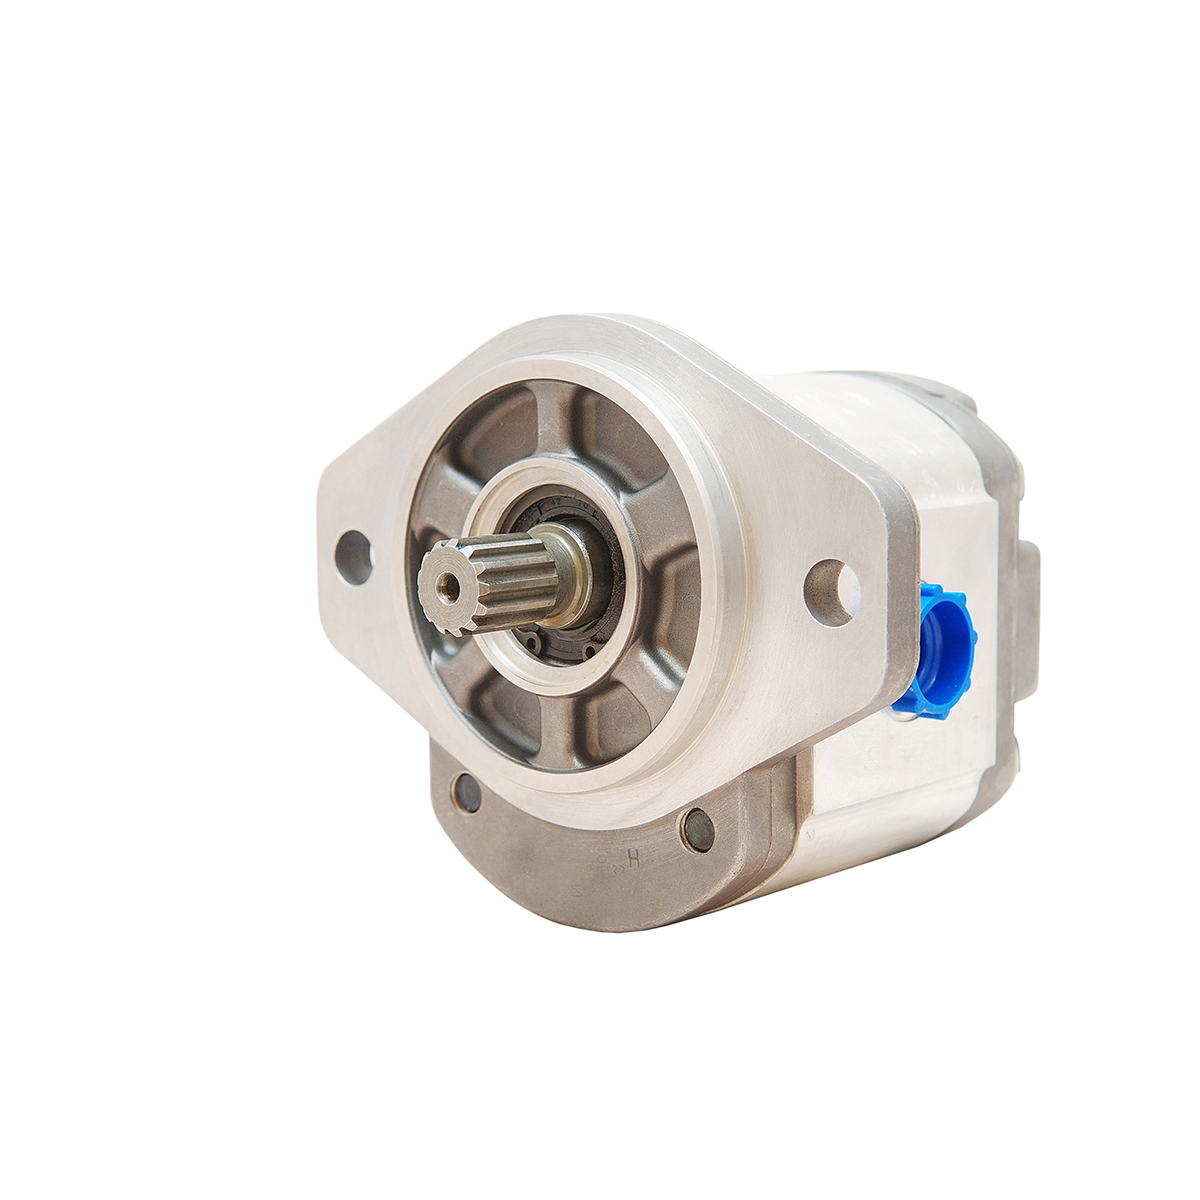 0.38 CID hydraulic gear pump, 9 tooth spline shaft clockwise gear pump | Magister Hydraulics